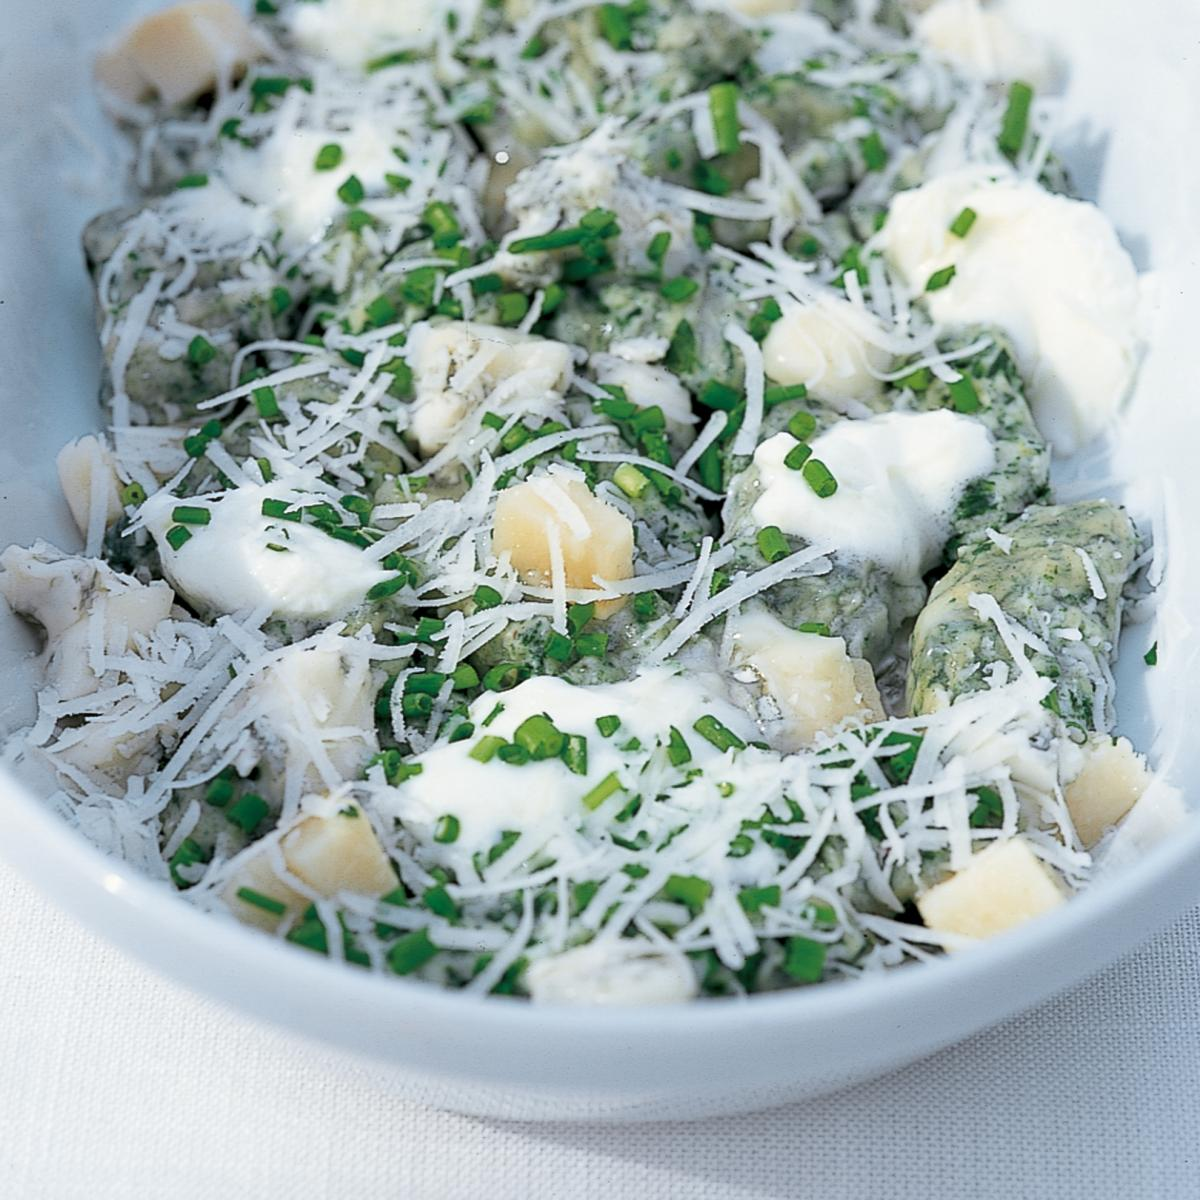 Htc spinach gnocchi with four cheeses